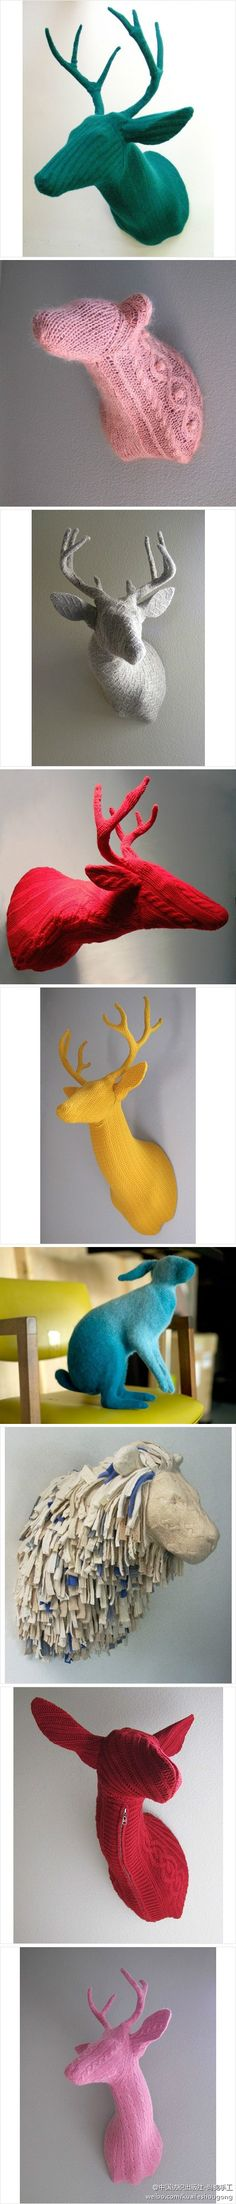 Cable Knit Taxidermy Must share w/ Jim F.!